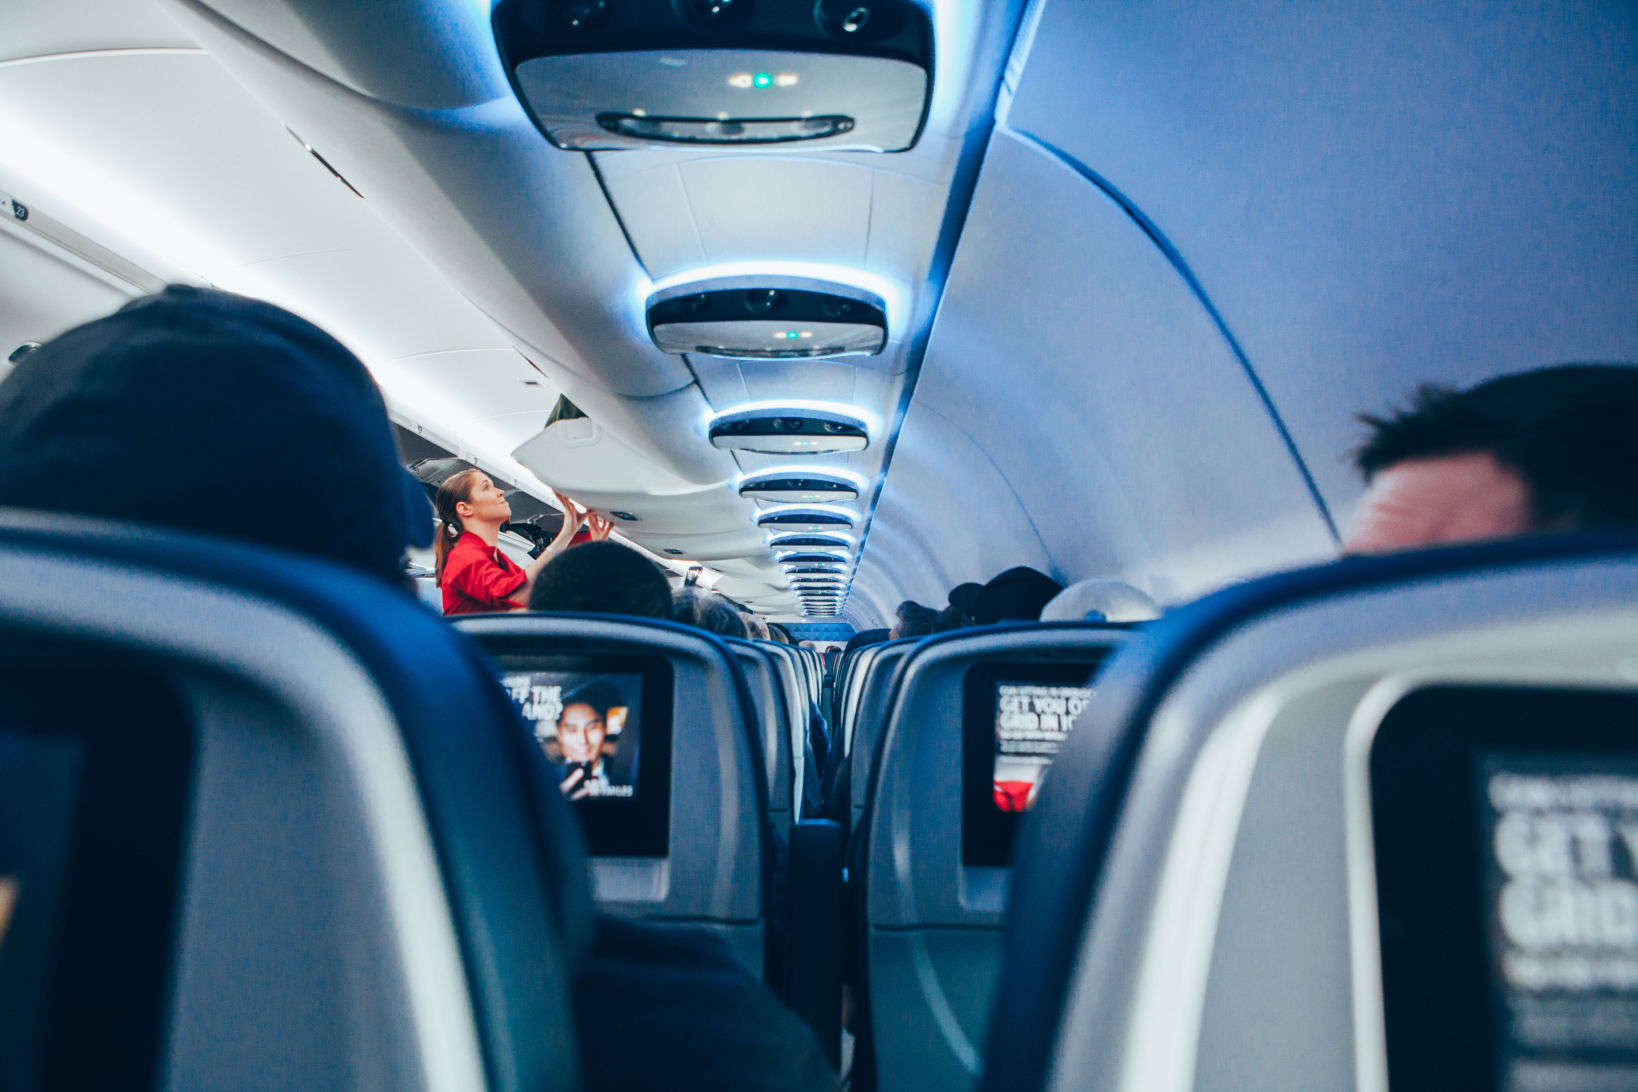 Airline seats - should you recline? Airplane etiquette